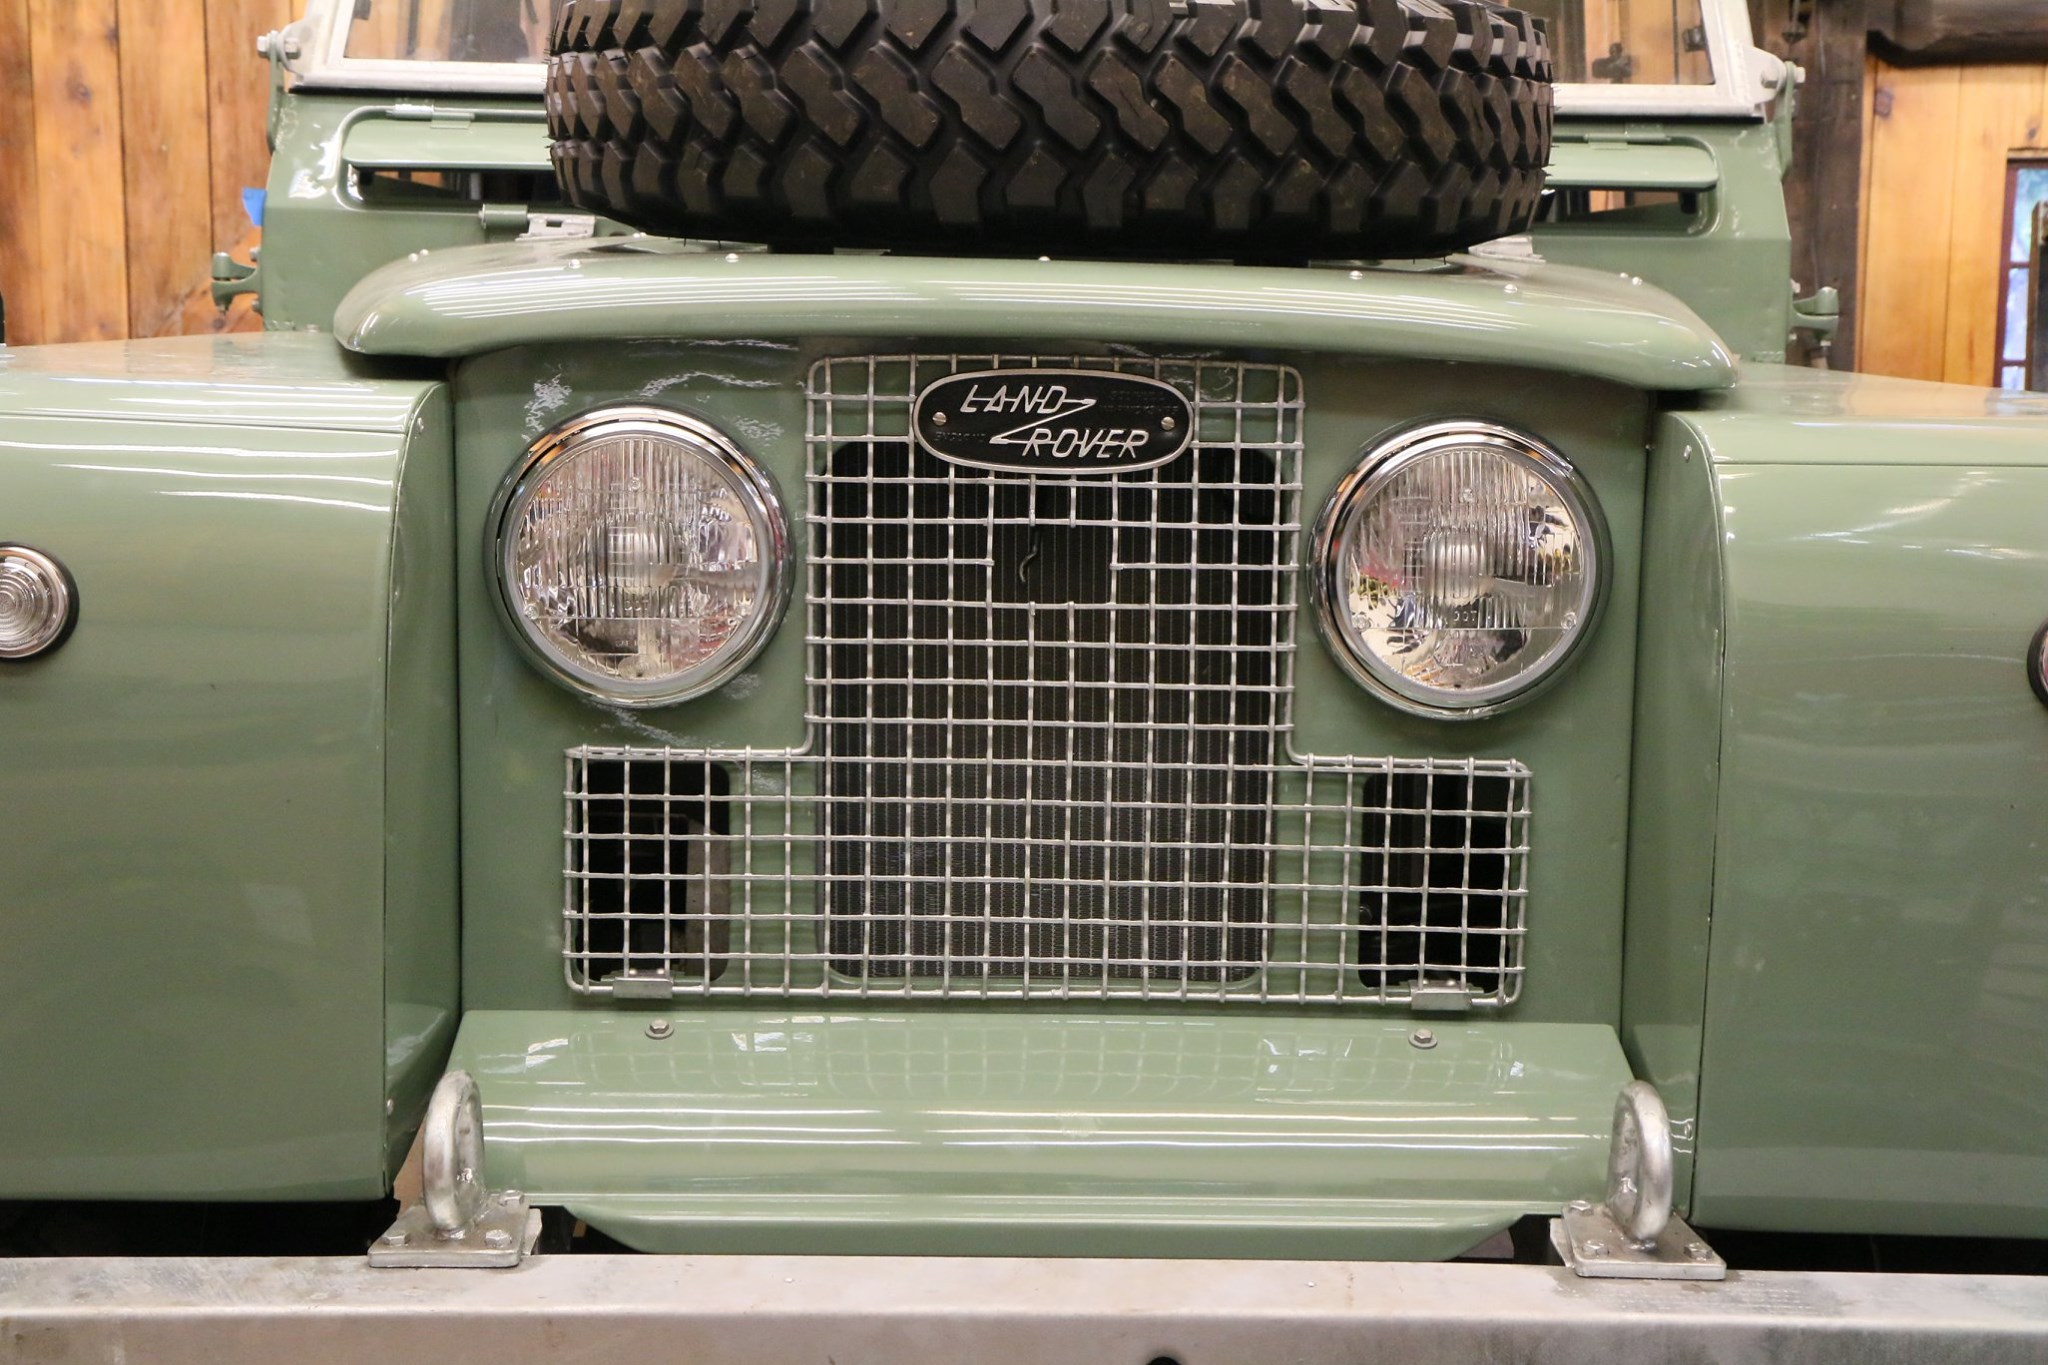 1965 Land Rover Series IIA Pastel Green Photo 41